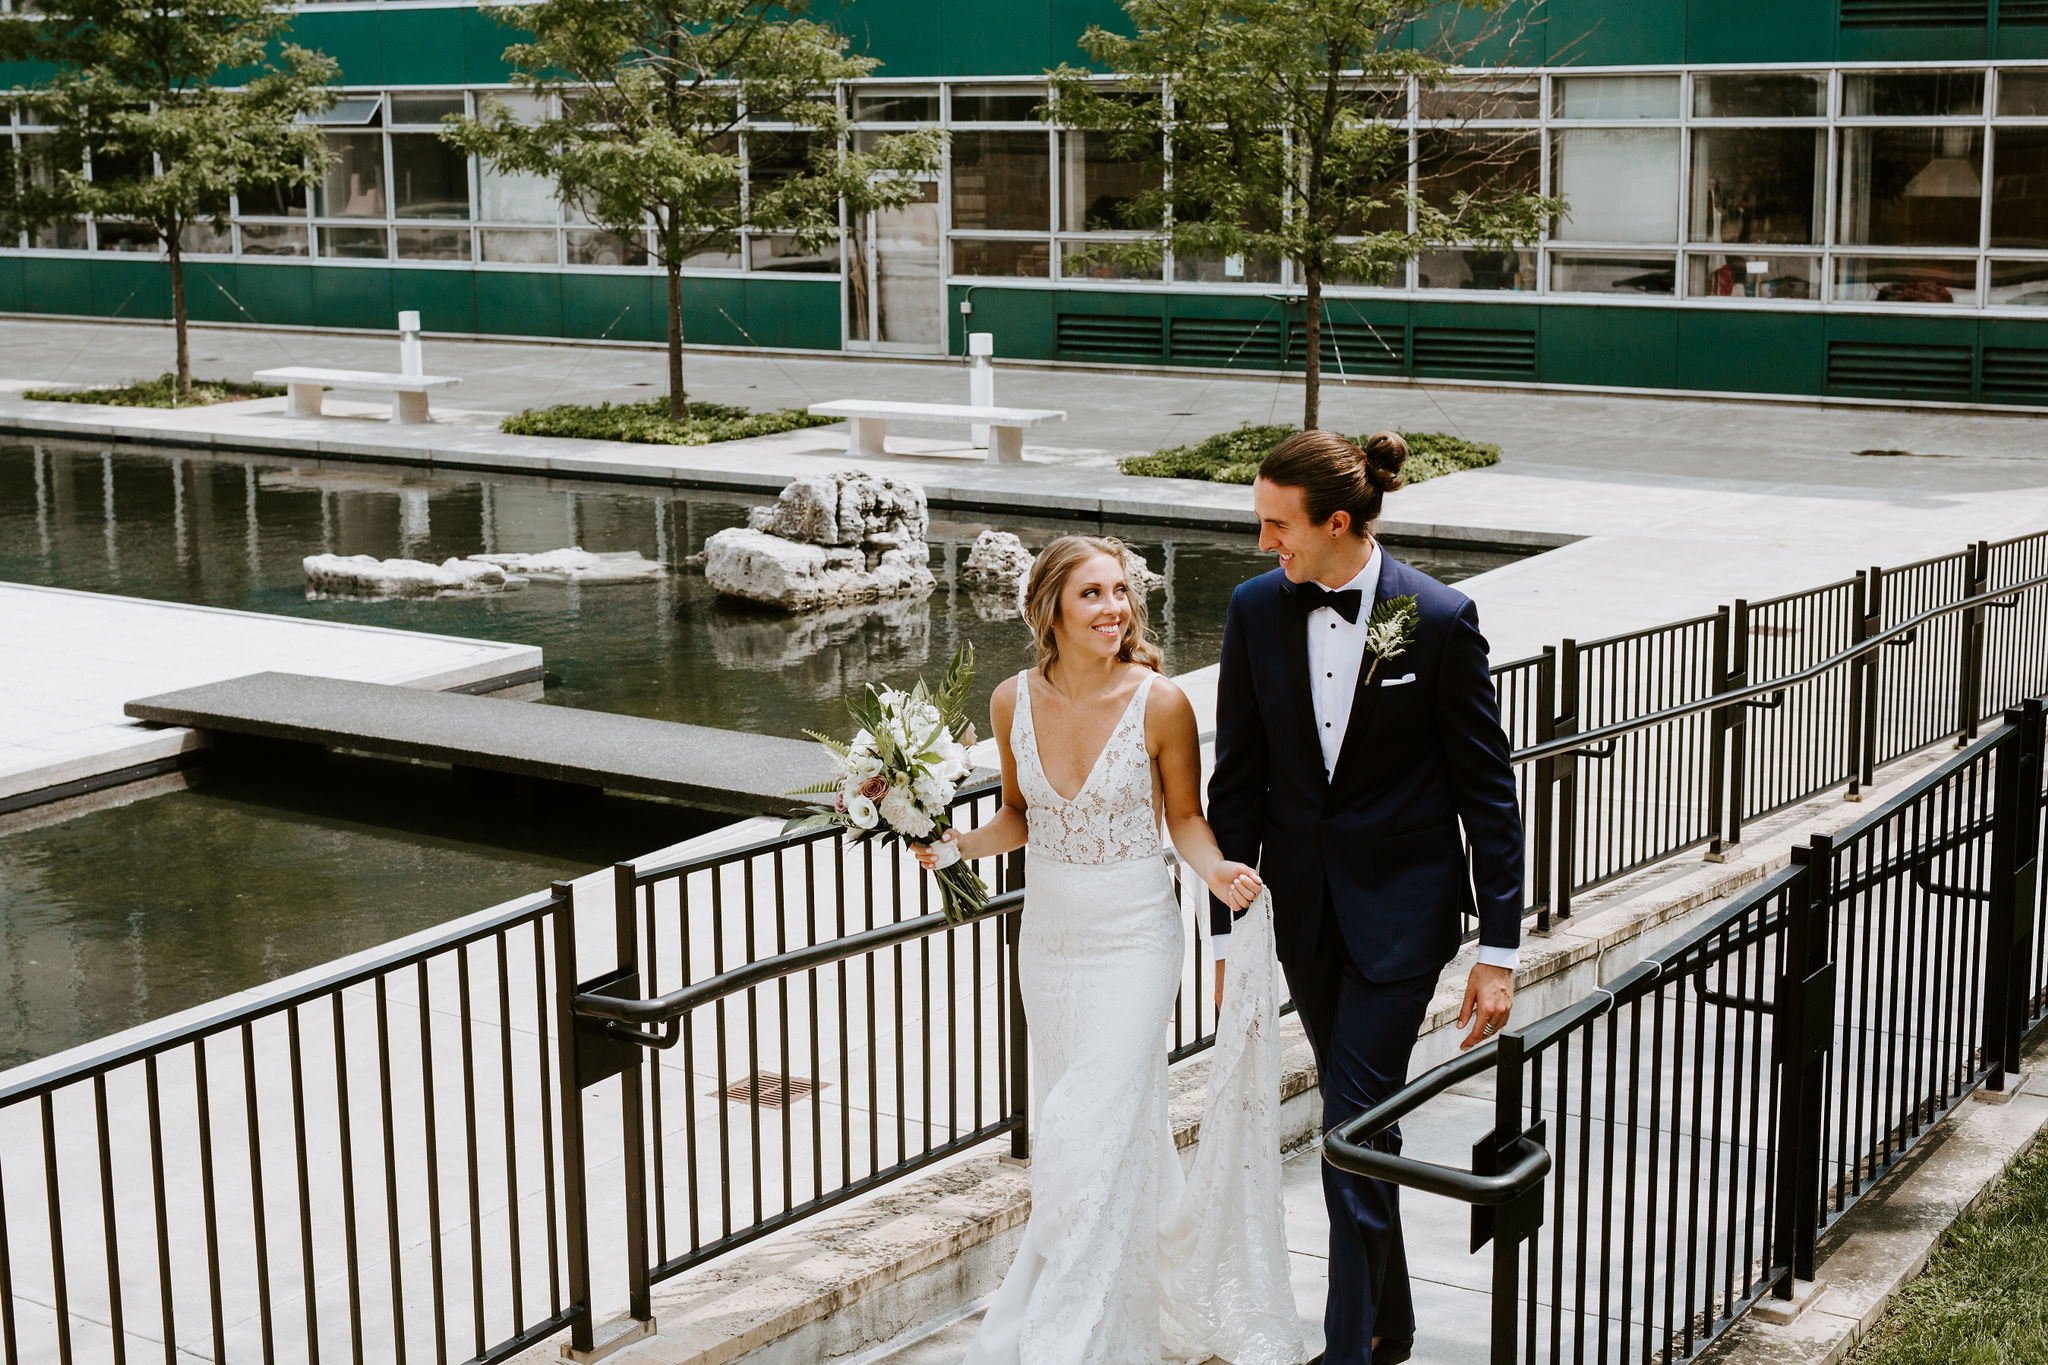 DetroitIndustrialWedding_Geoff&LyndsiPhotography_Alex&Jen_FirstLook46.jpg